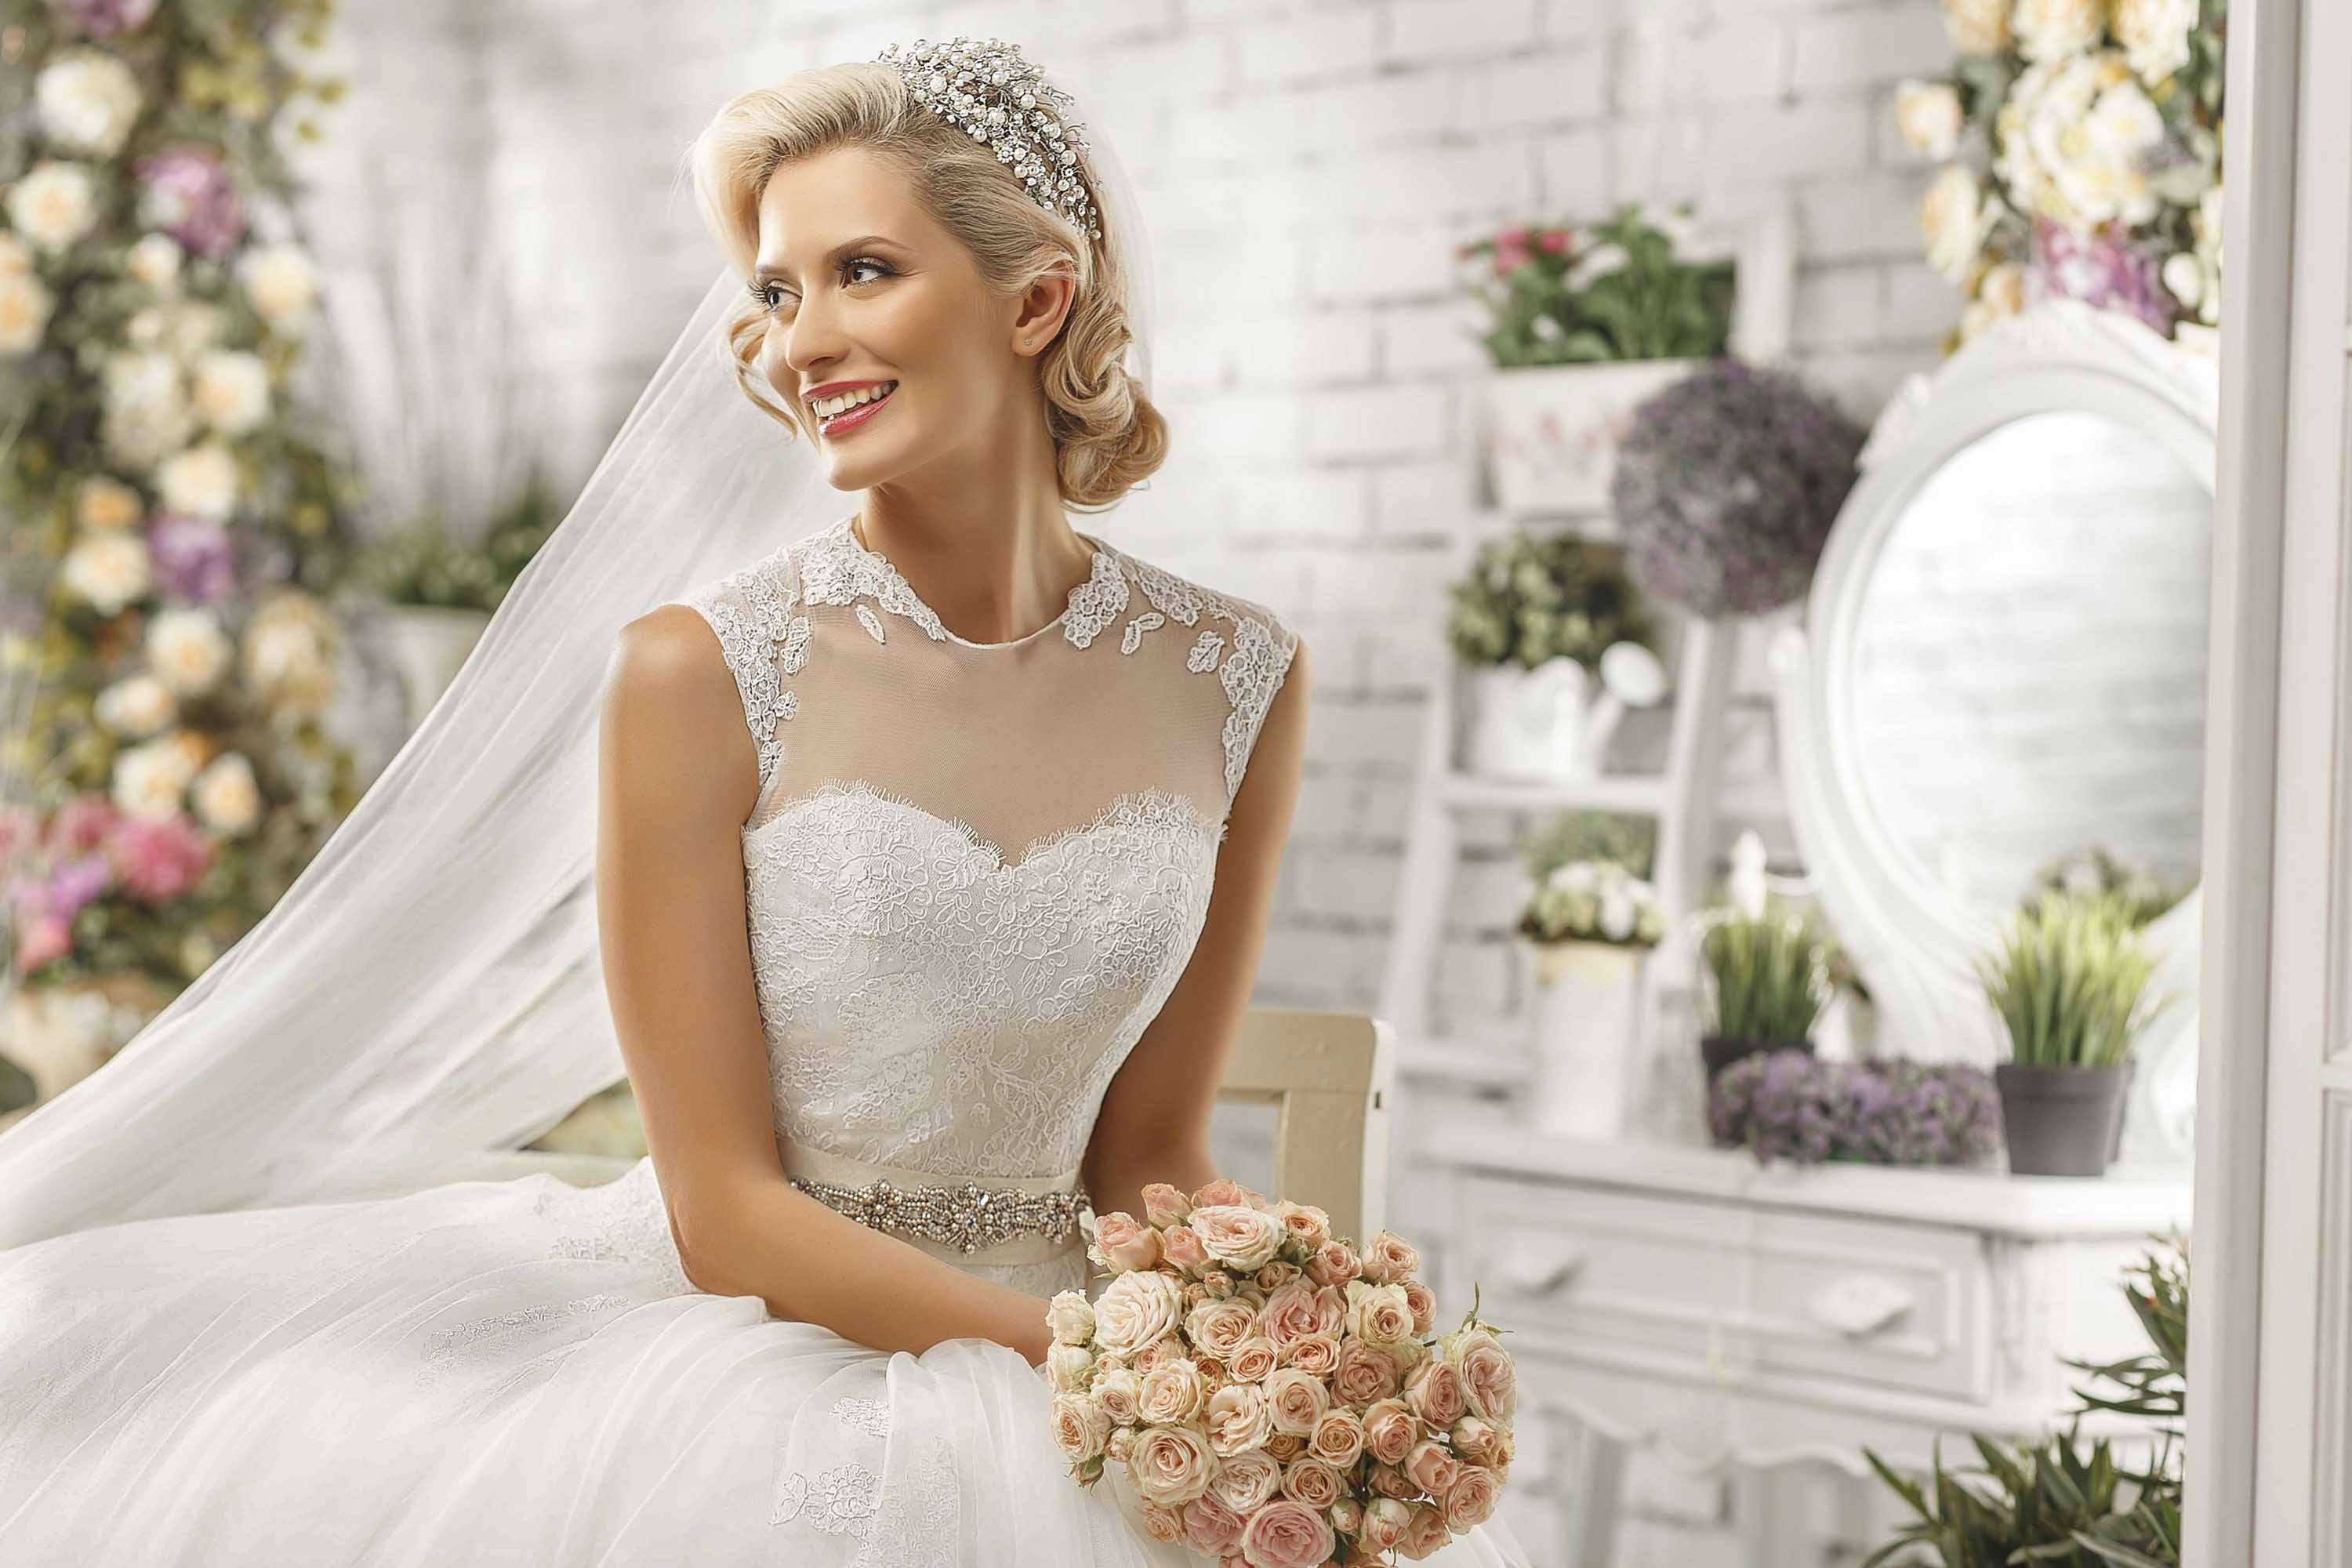 Wedding Updo Hairstyles: 6 Styles for your Winter Wedding